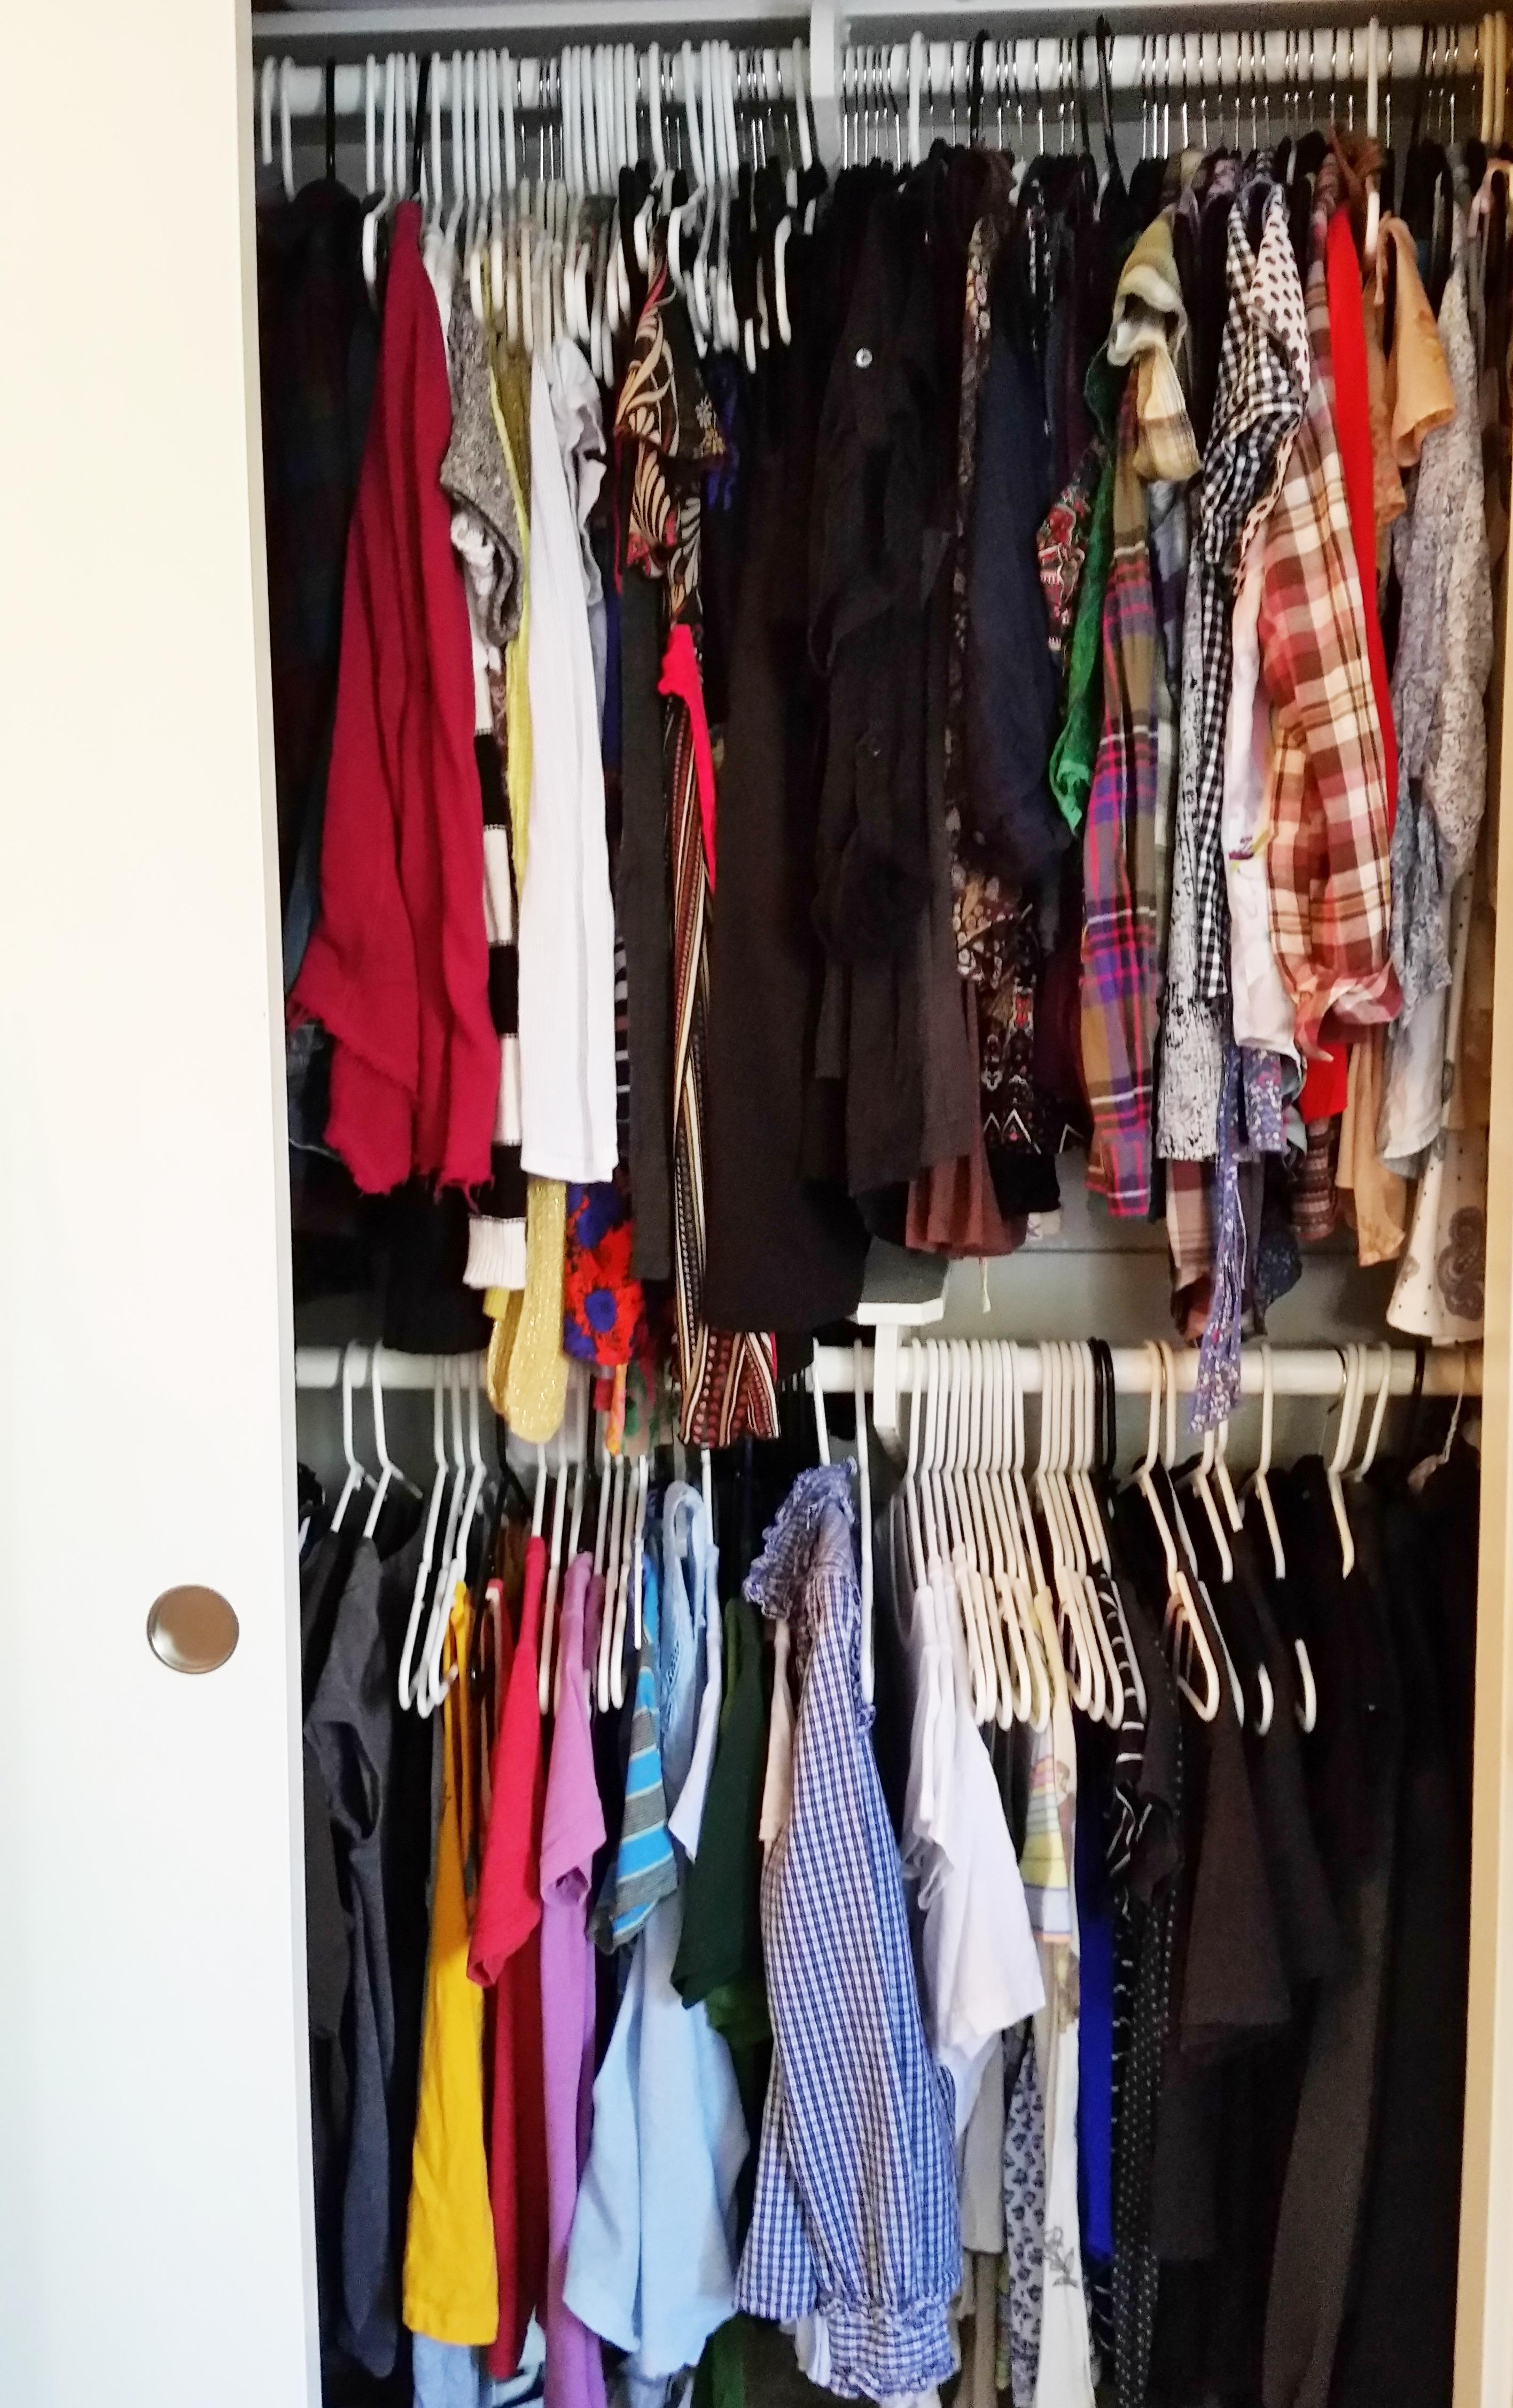 Tackling a full closet can be a challenge, but planning and focus will help organize in an hour!